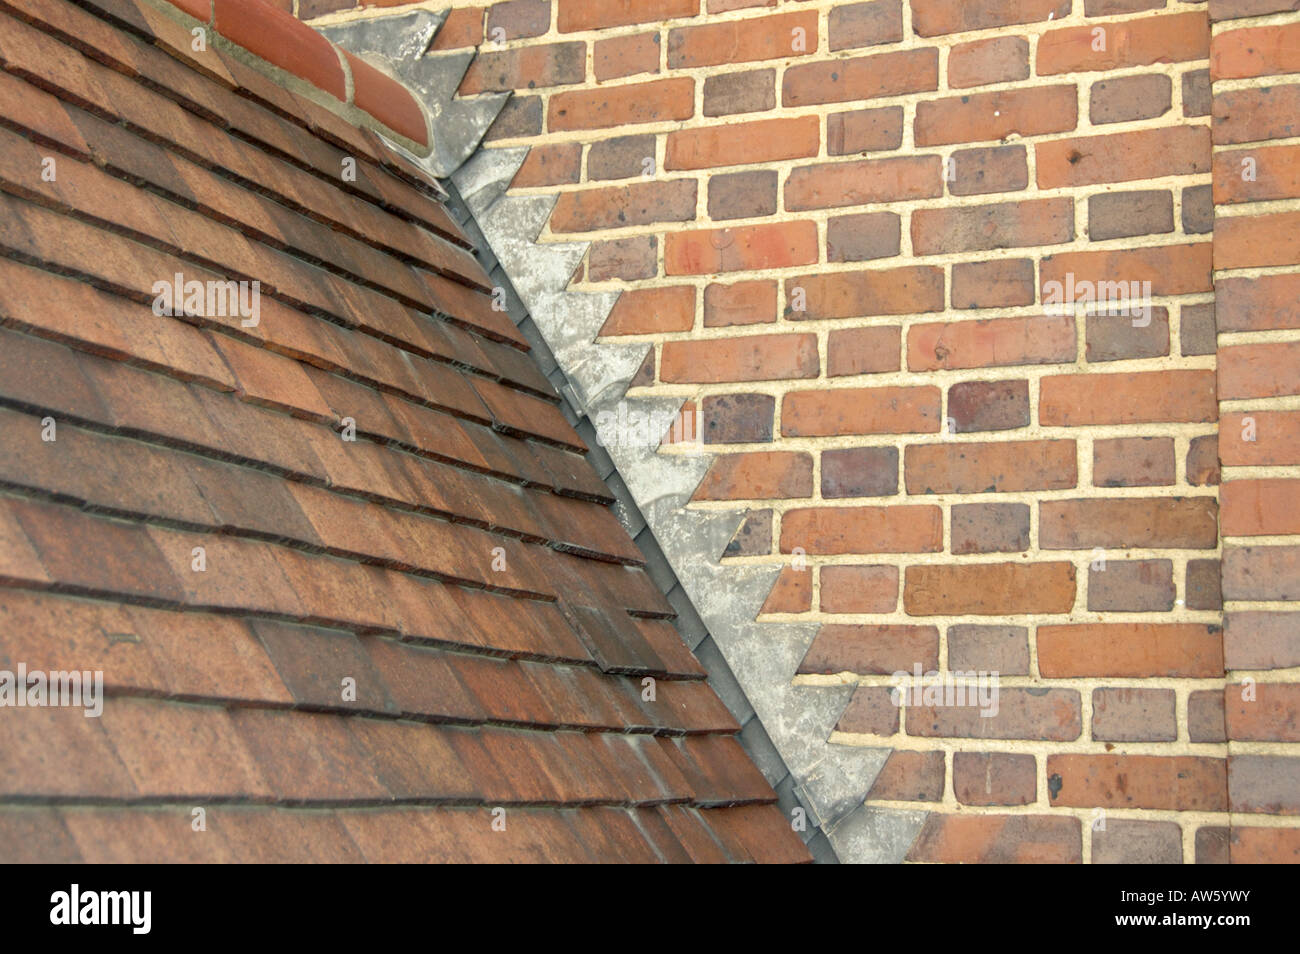 Neat Stepped Lead Flashing And Clay Roof Tiling Abutting A